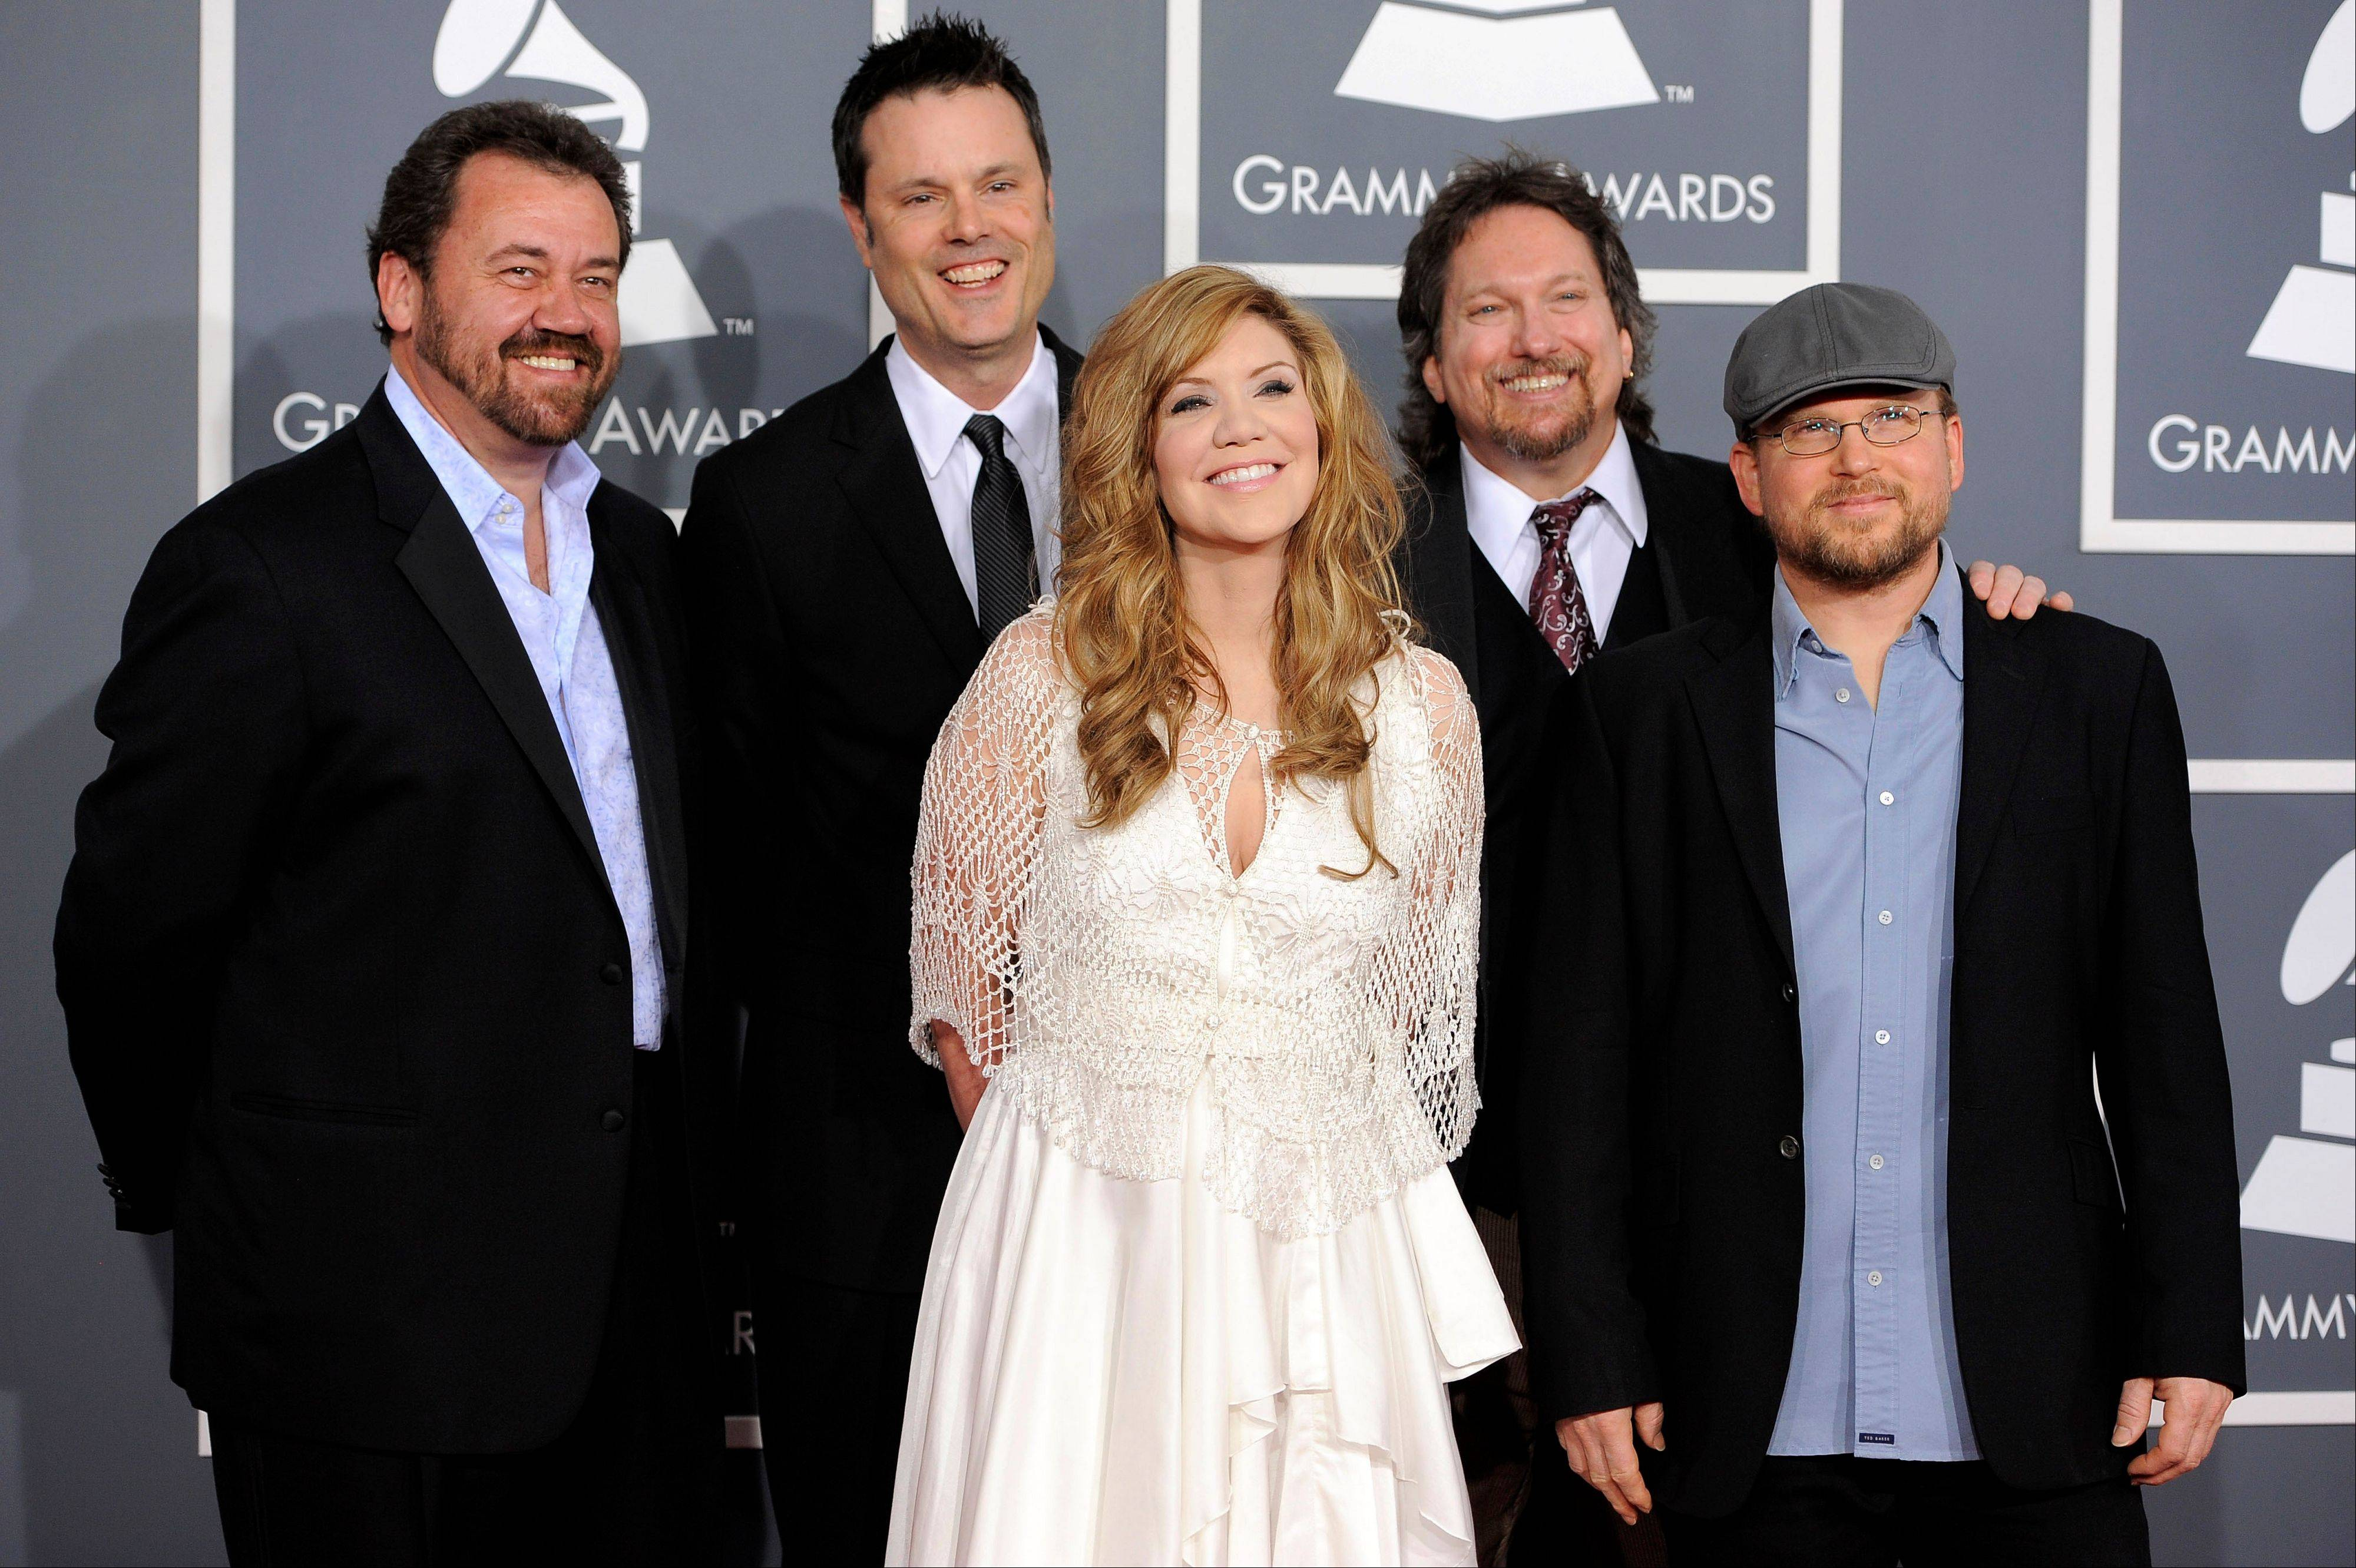 Alison Krauss, center, and the band Union Station arrive Sunday at the 54th annual Grammy Awards in Los Angeles.